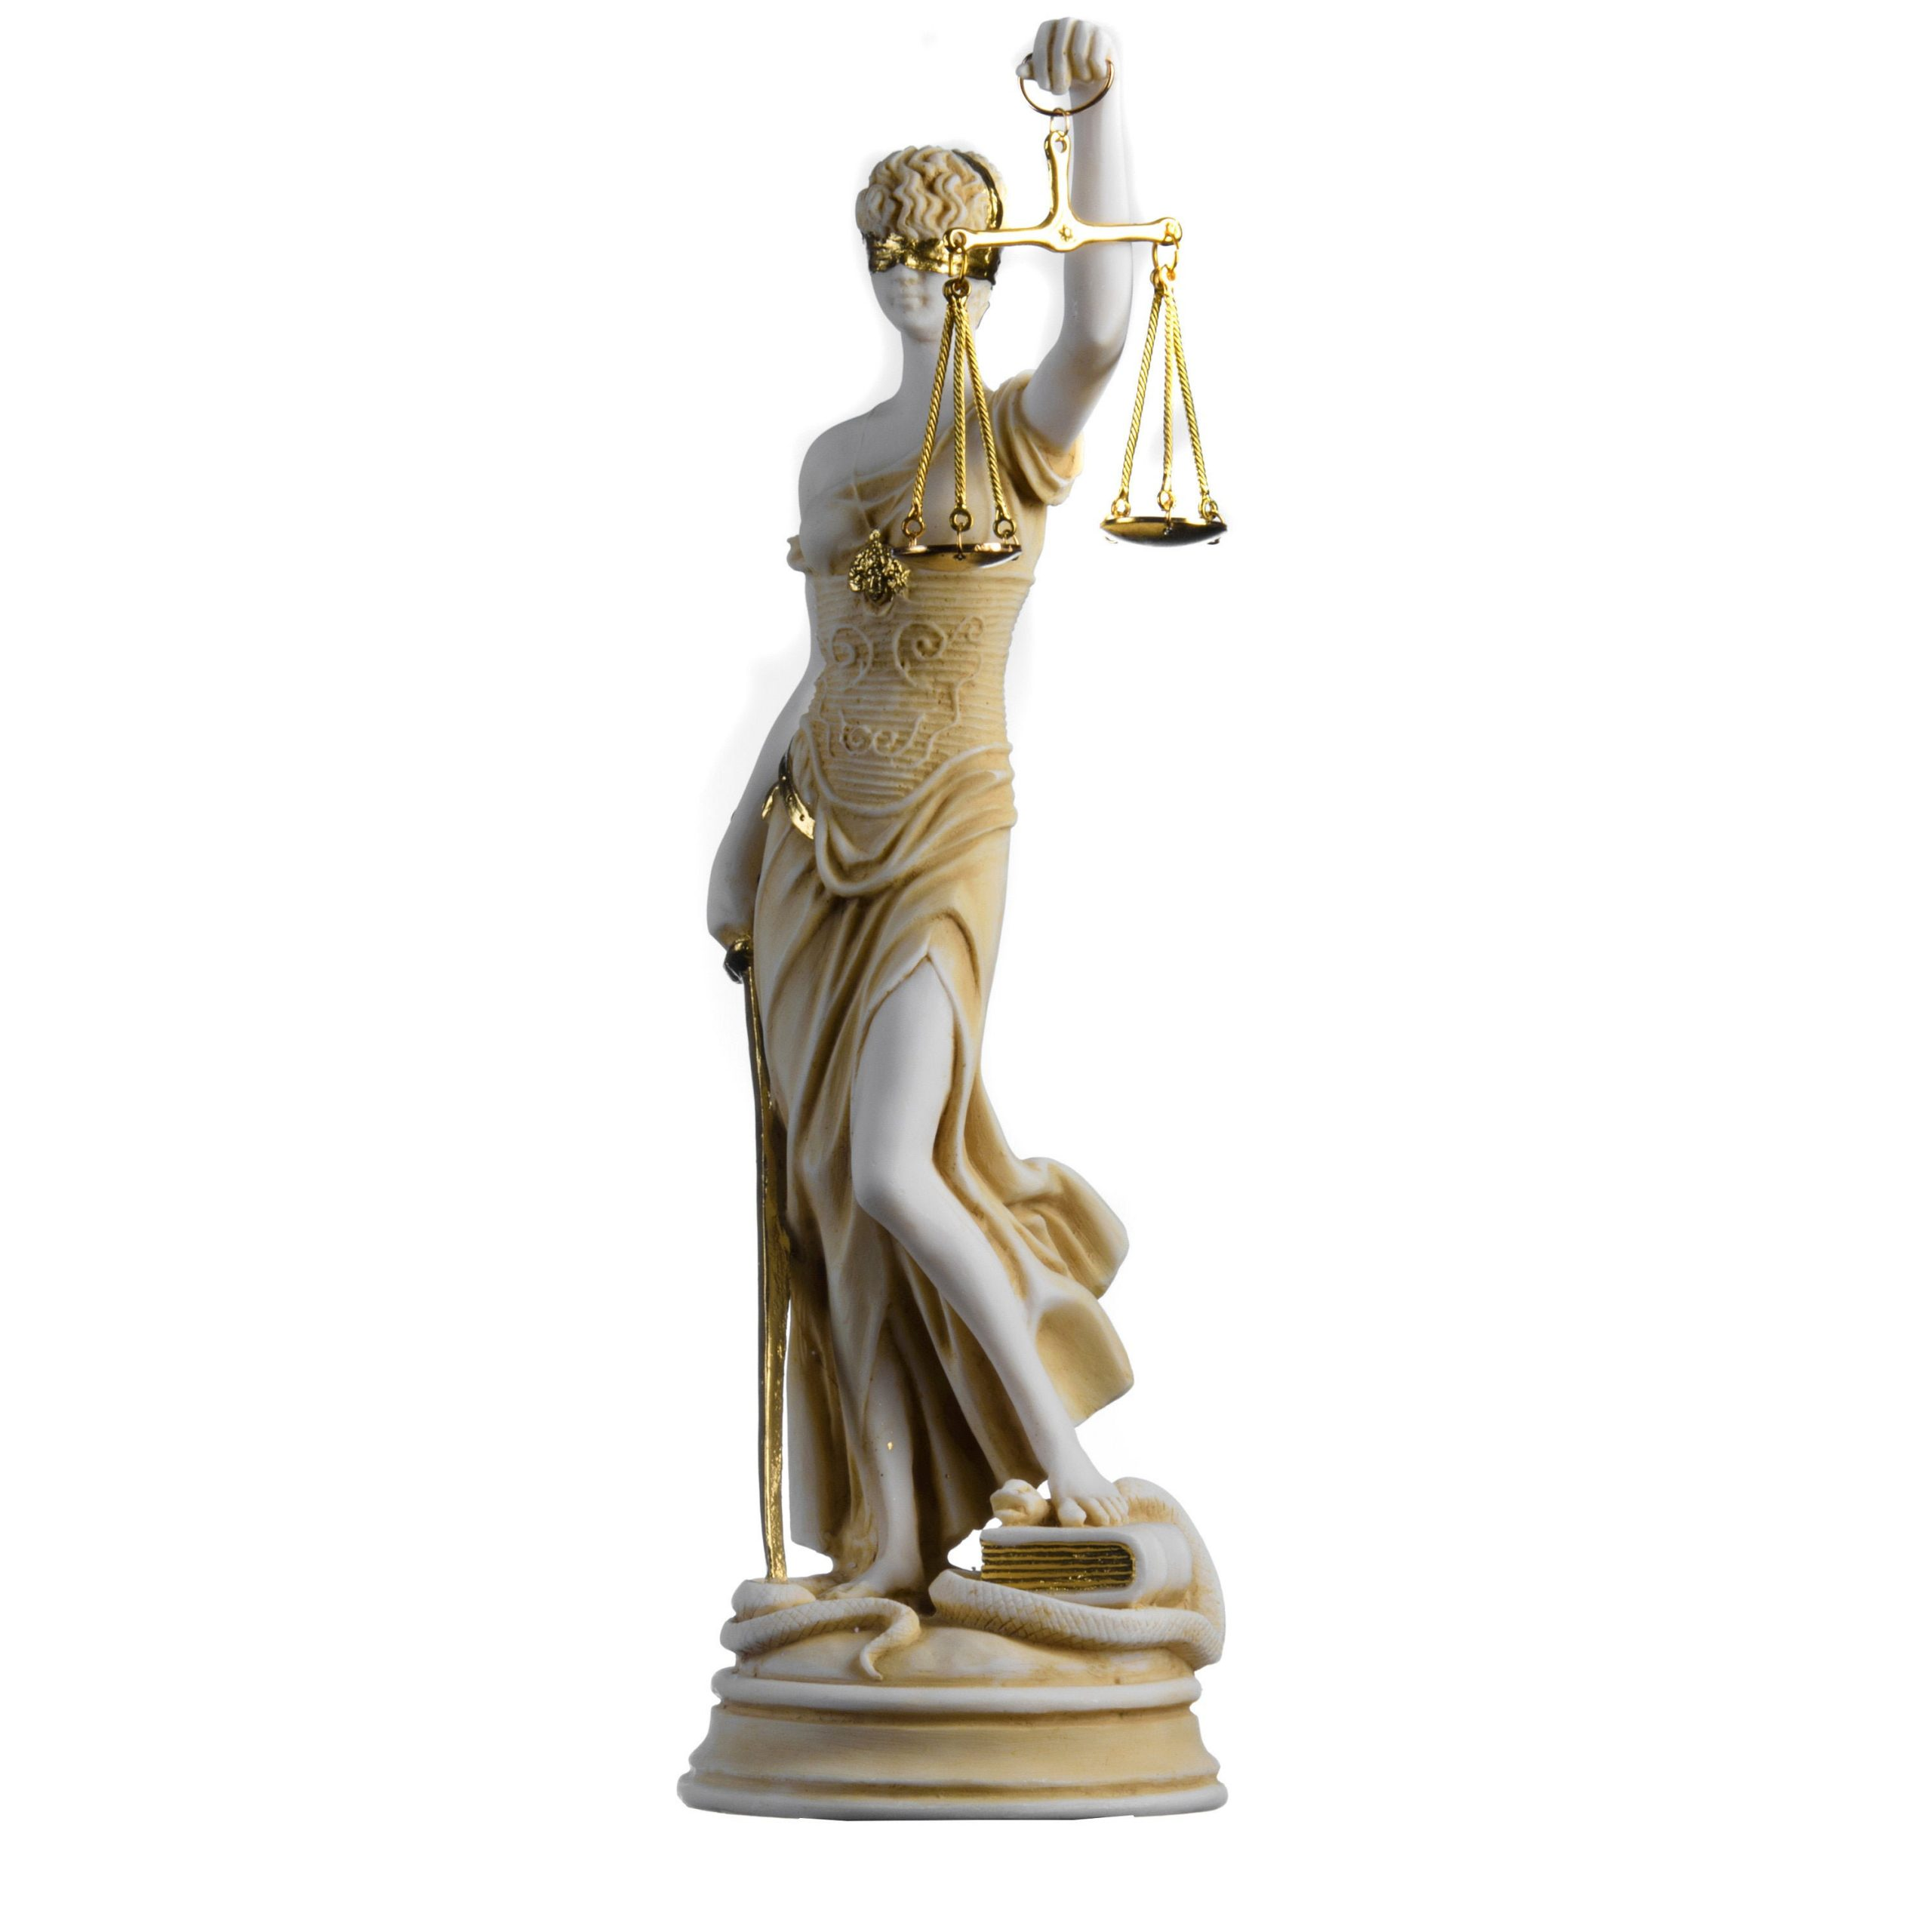 Greek Goddess Themis Statue Gold Colour Blind Lady Justice Sculpture Lawyer Gift 13.97''